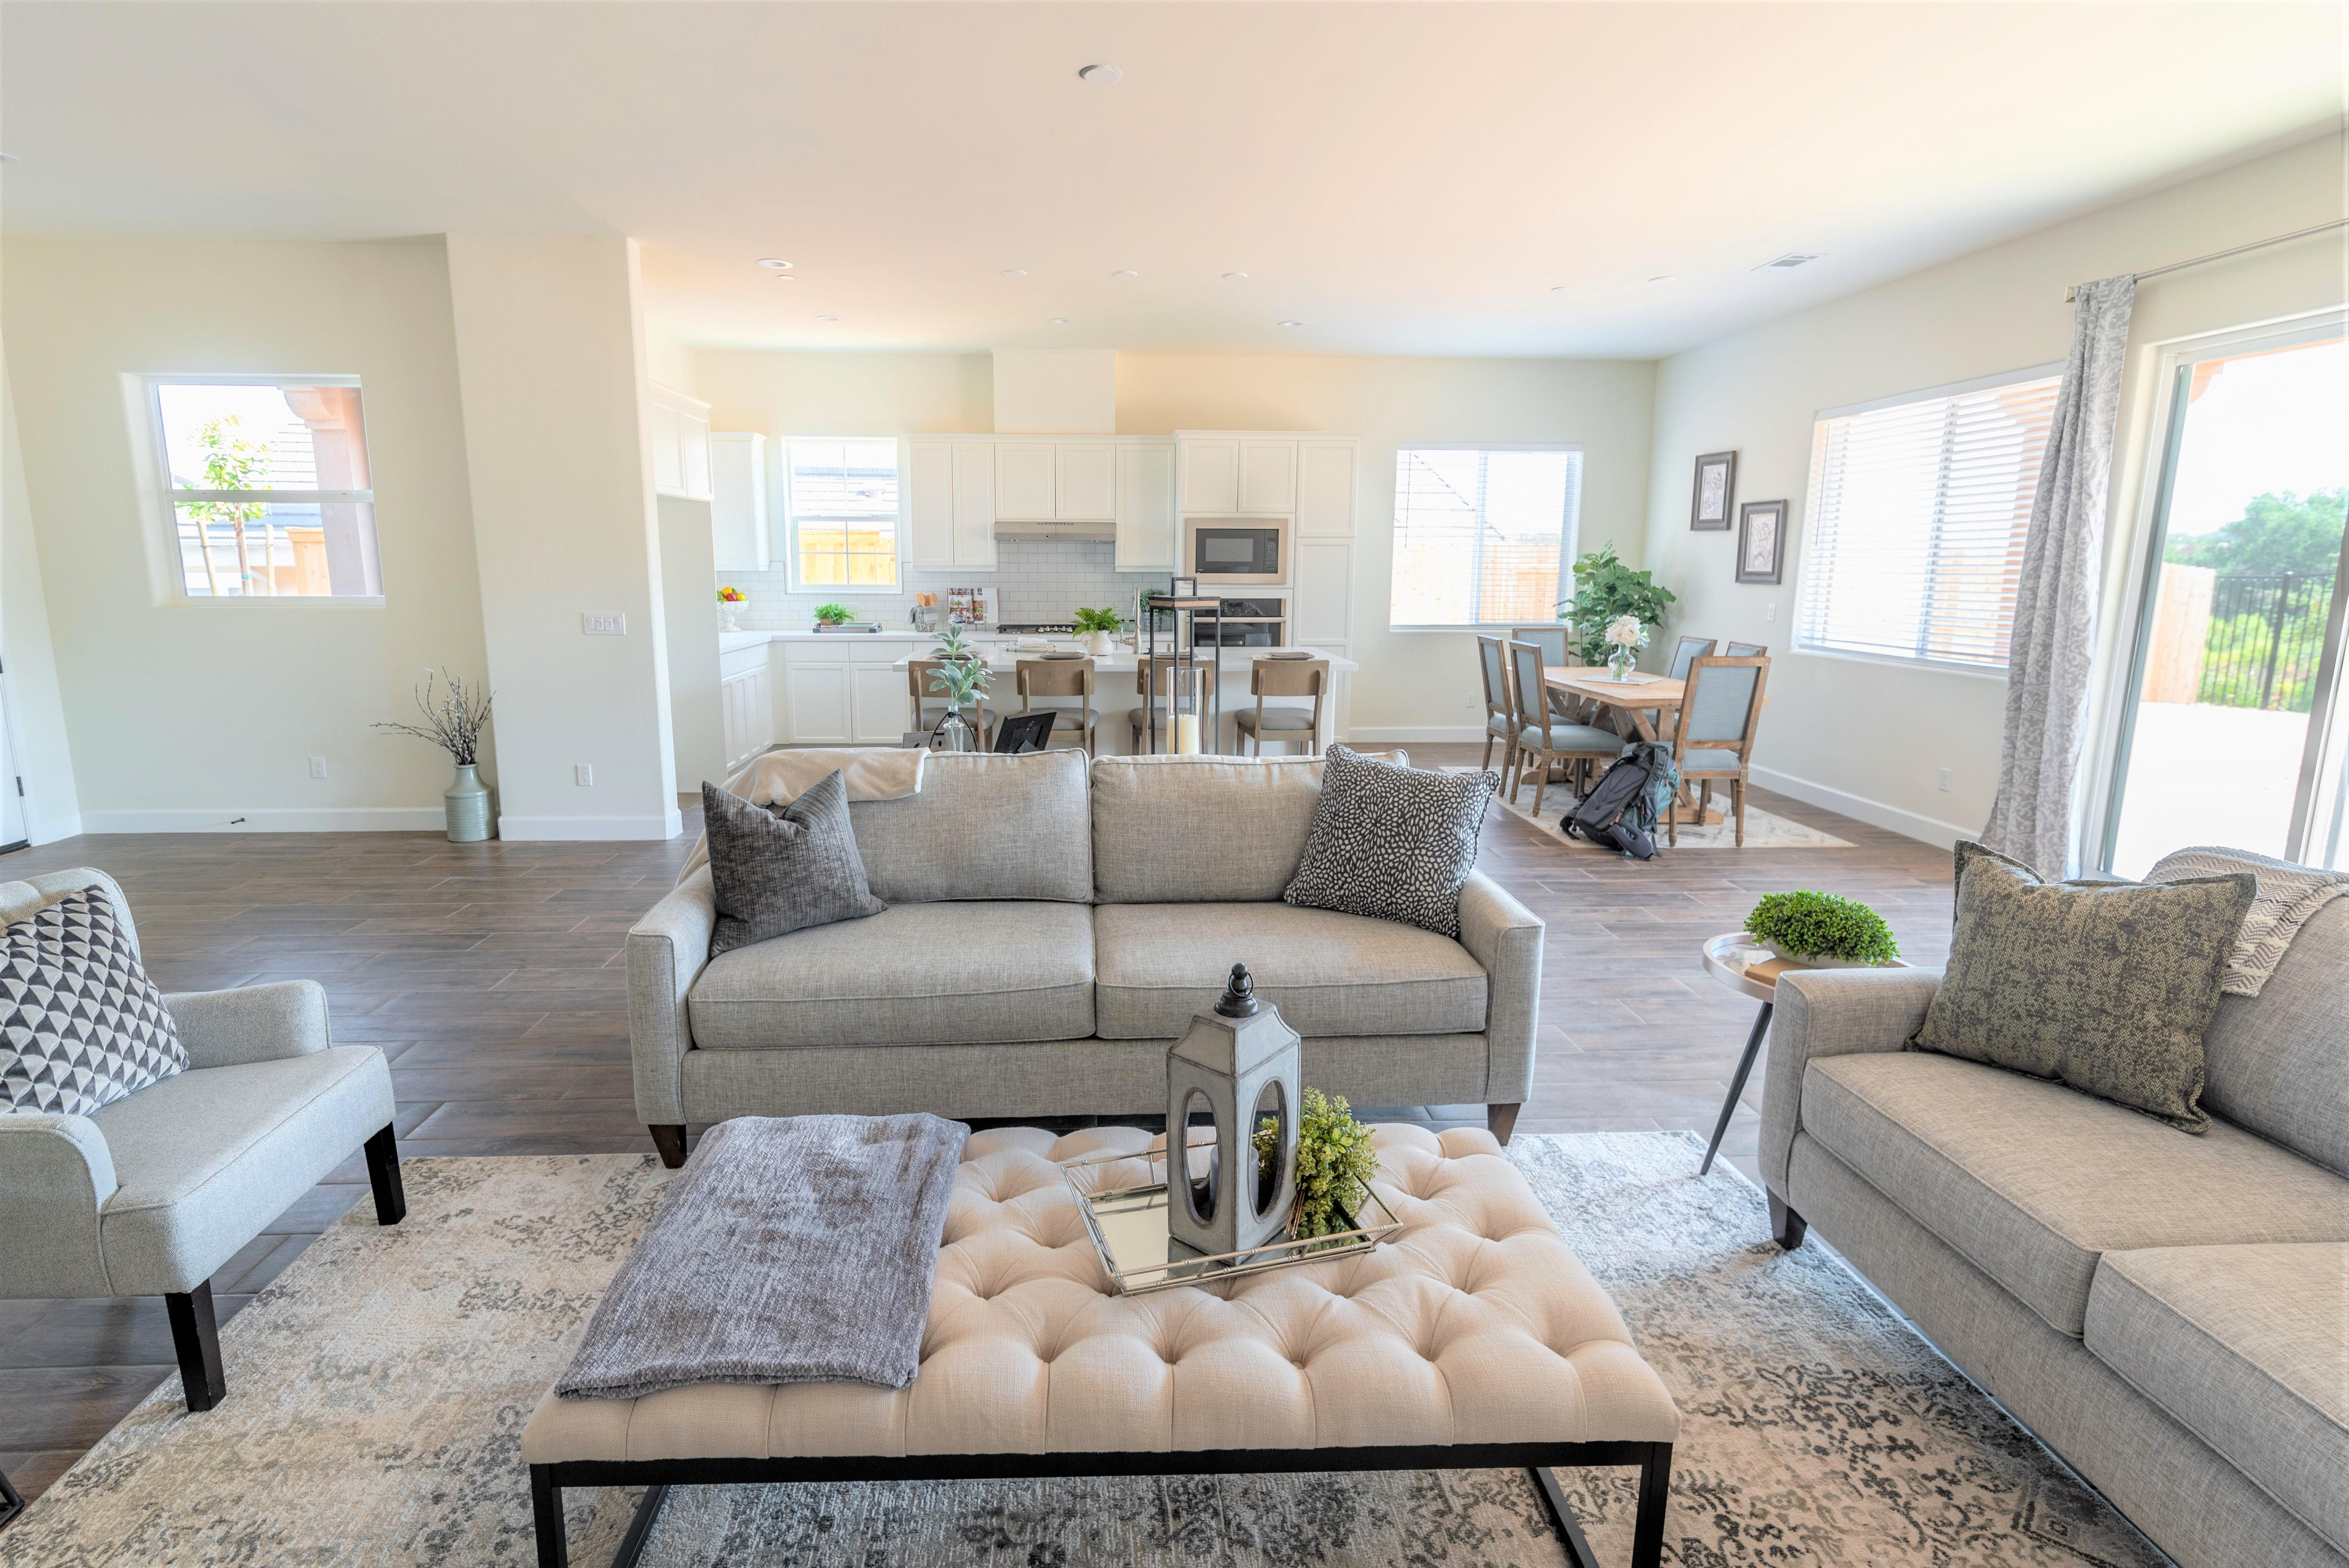 Living Area featured in the Cambridge By Coastal Community Builders in Santa Barbara, CA